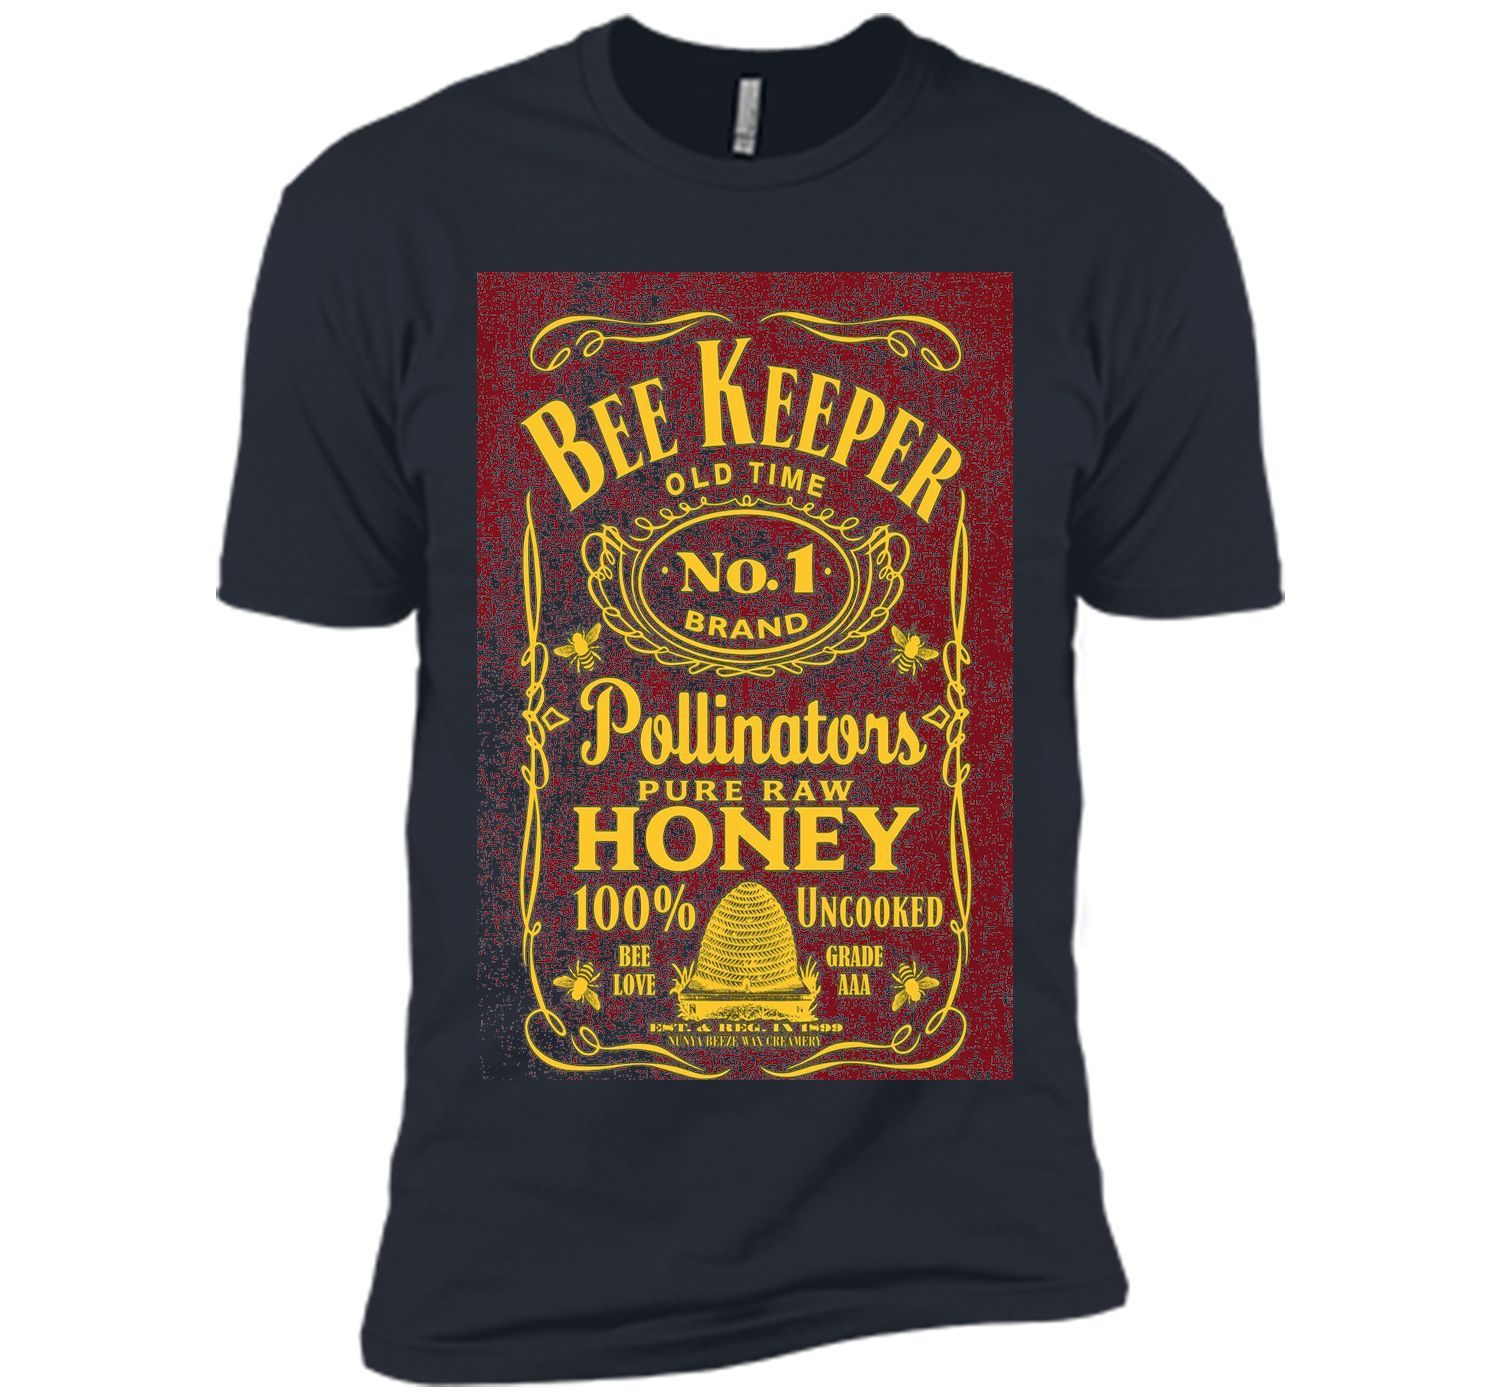 aaa0ef8c Beekeeper T-Shirt Beekeeping Shirt Old Time Honey cool shirt ...